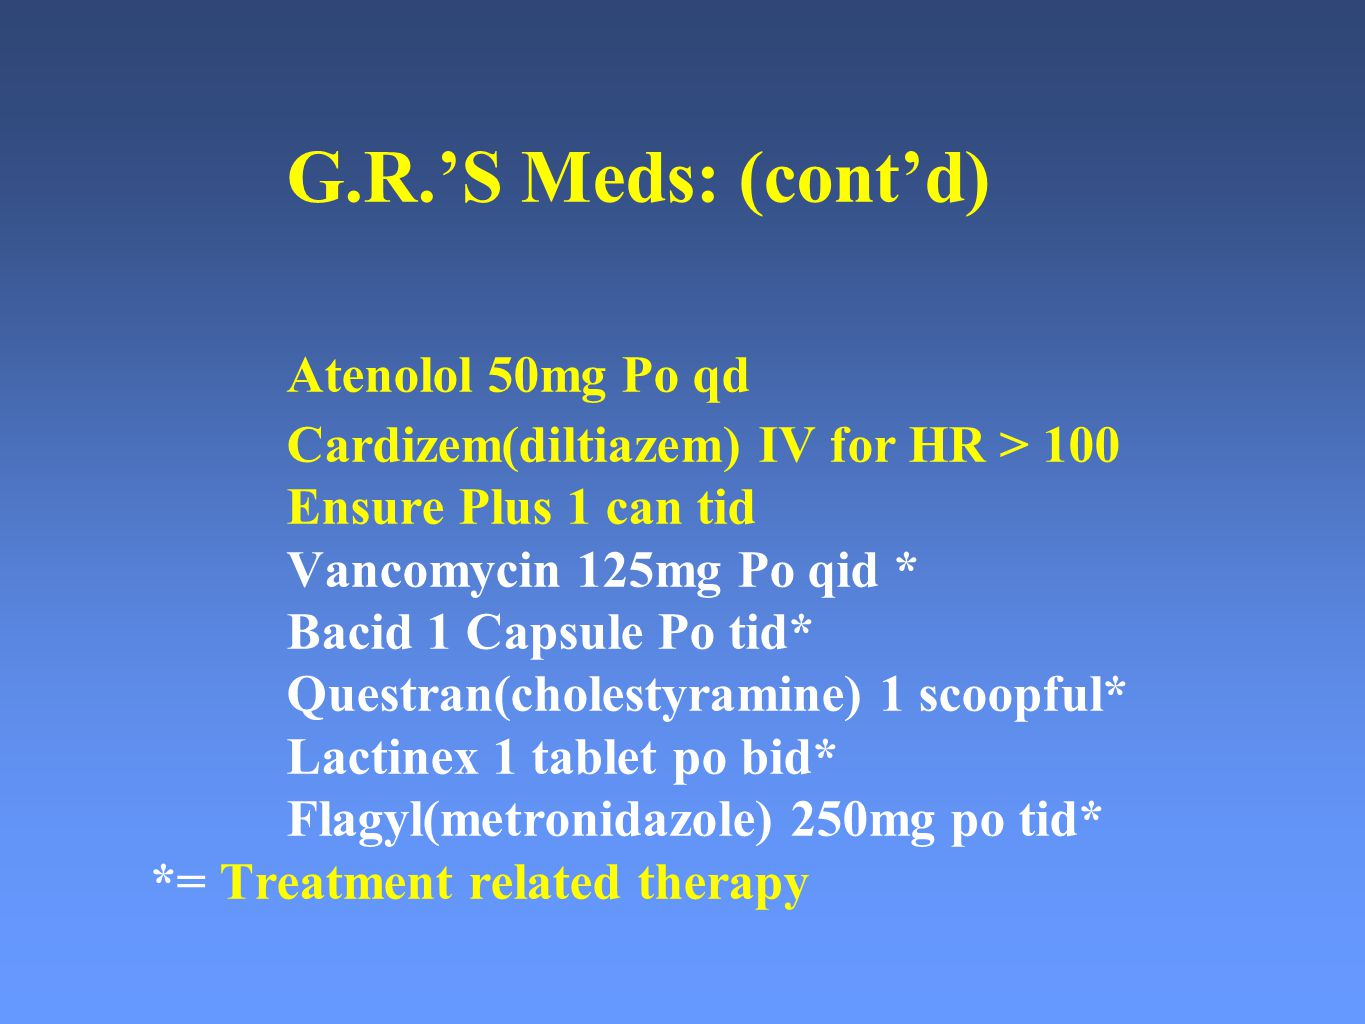 G.R.'S Meds: (cont'd) Atenolol 50mg Po qd Cardizem(diltiazem) IV for HR > 100 Ensure Plus 1 can tid Vancomycin 125mg Po qid * Bacid 1 Capsule Po tid* Questran(cholestyramine) 1 scoopful* Lactinex 1 tablet po bid* Flagyl(metronidazole) 250mg po tid* *= Treatment related therapy